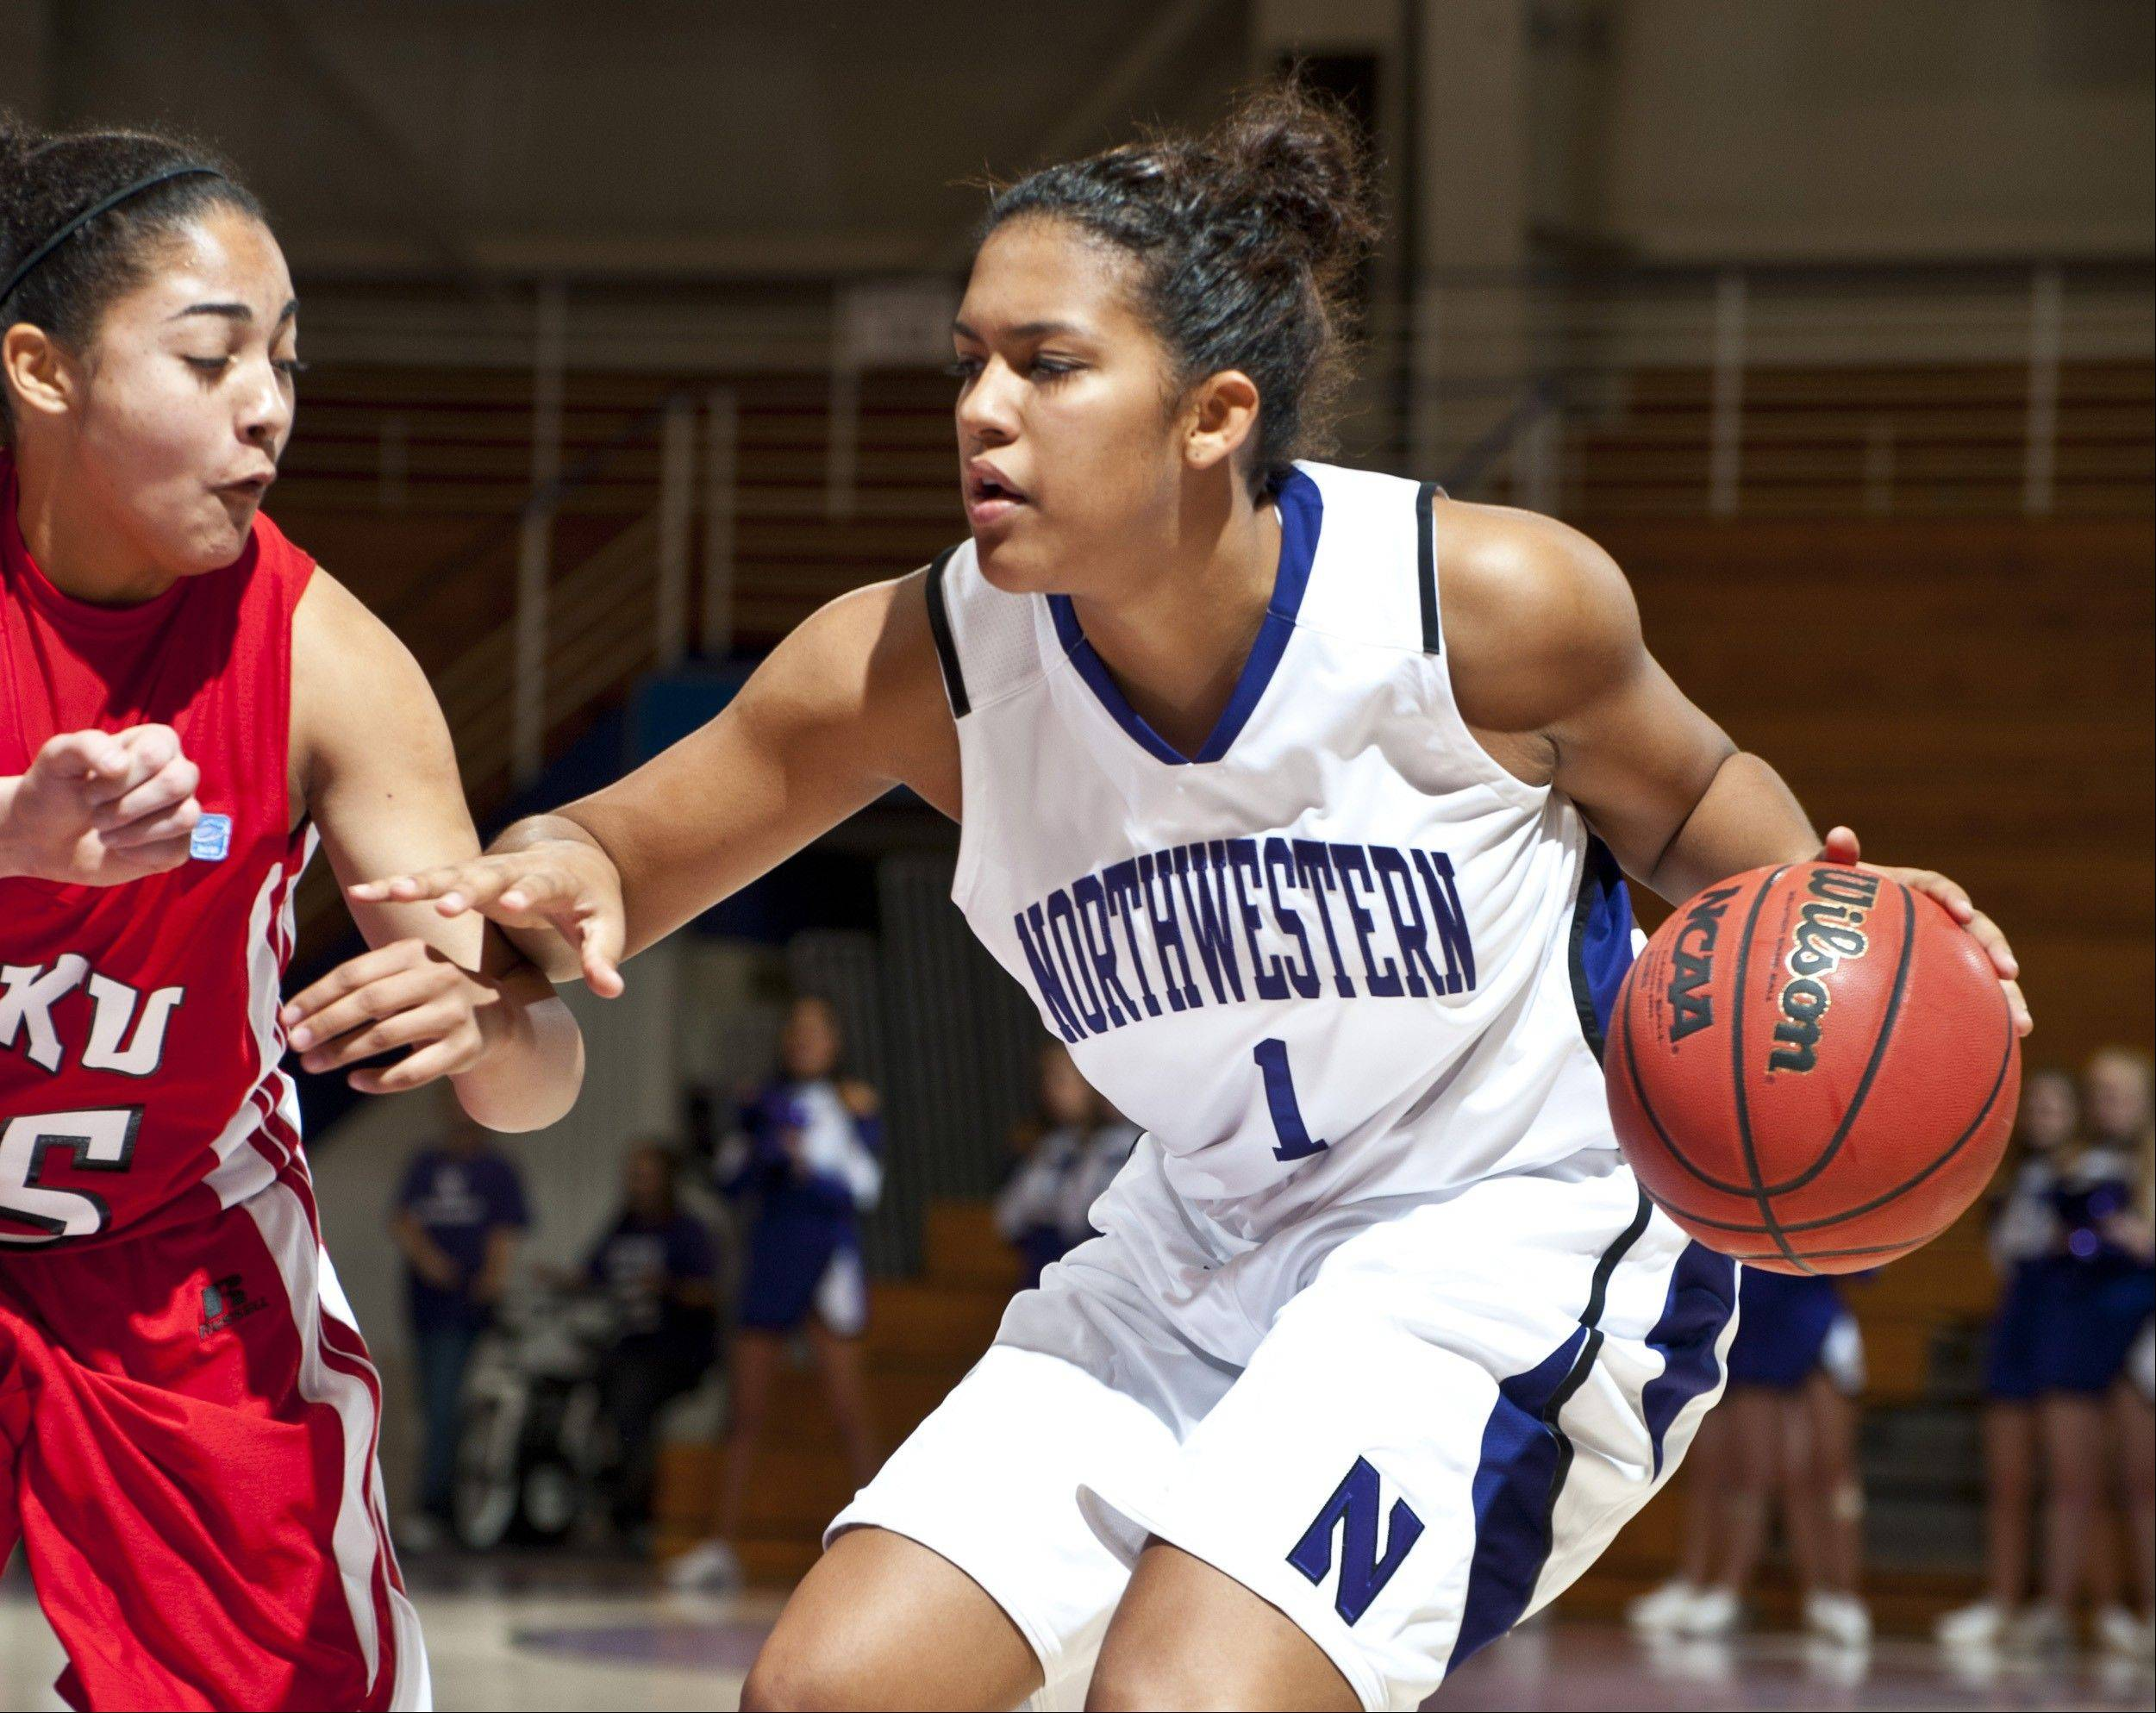 Northwestern freshman guard Morgan Jones, here working against Western Kentucky, is playing more than 30 minutes a game for the Wildcats this season.